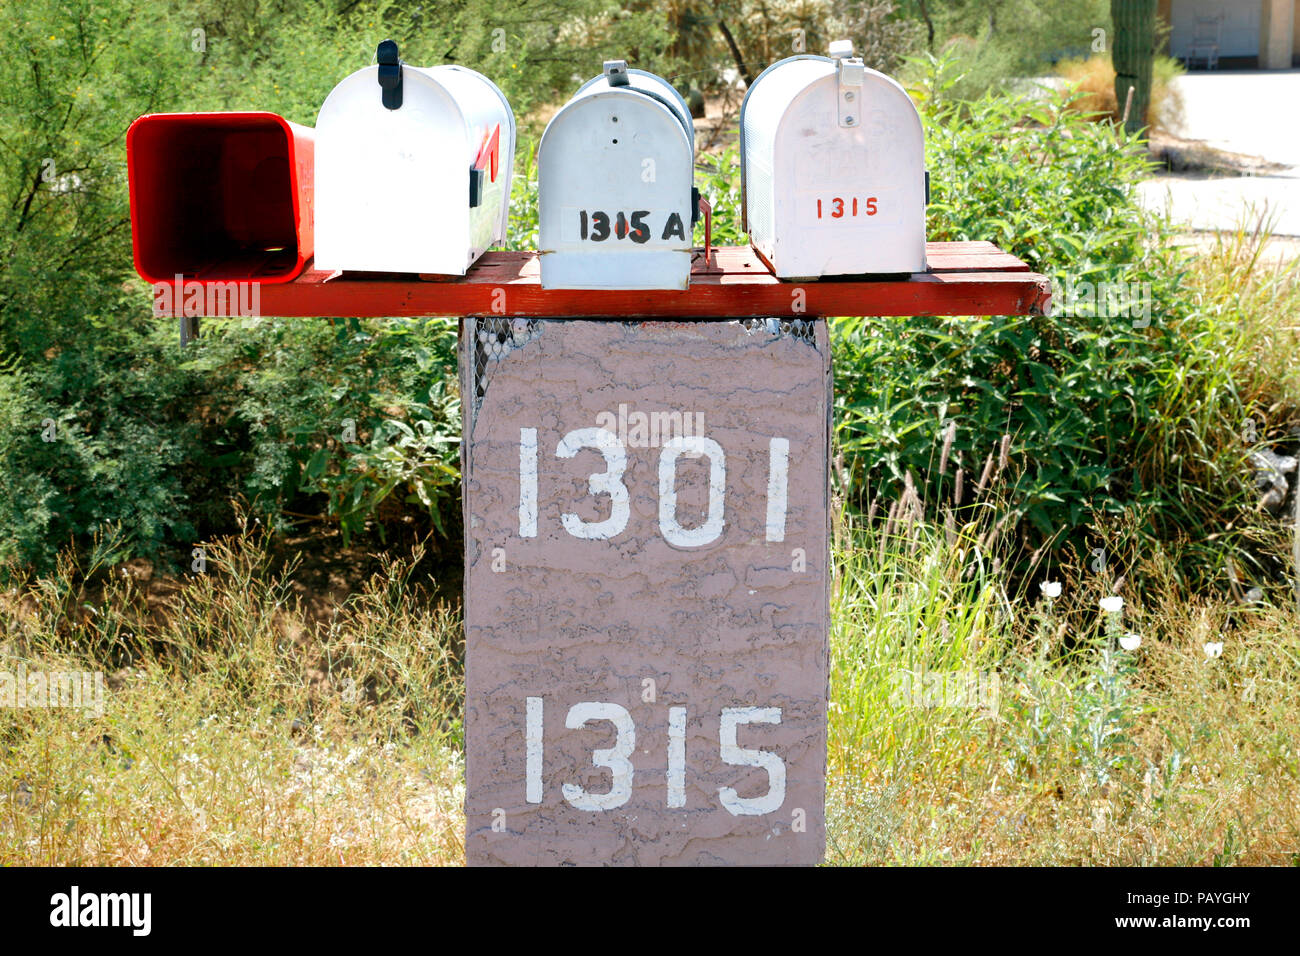 mailboxes in Tucson. USA. - Stock Image